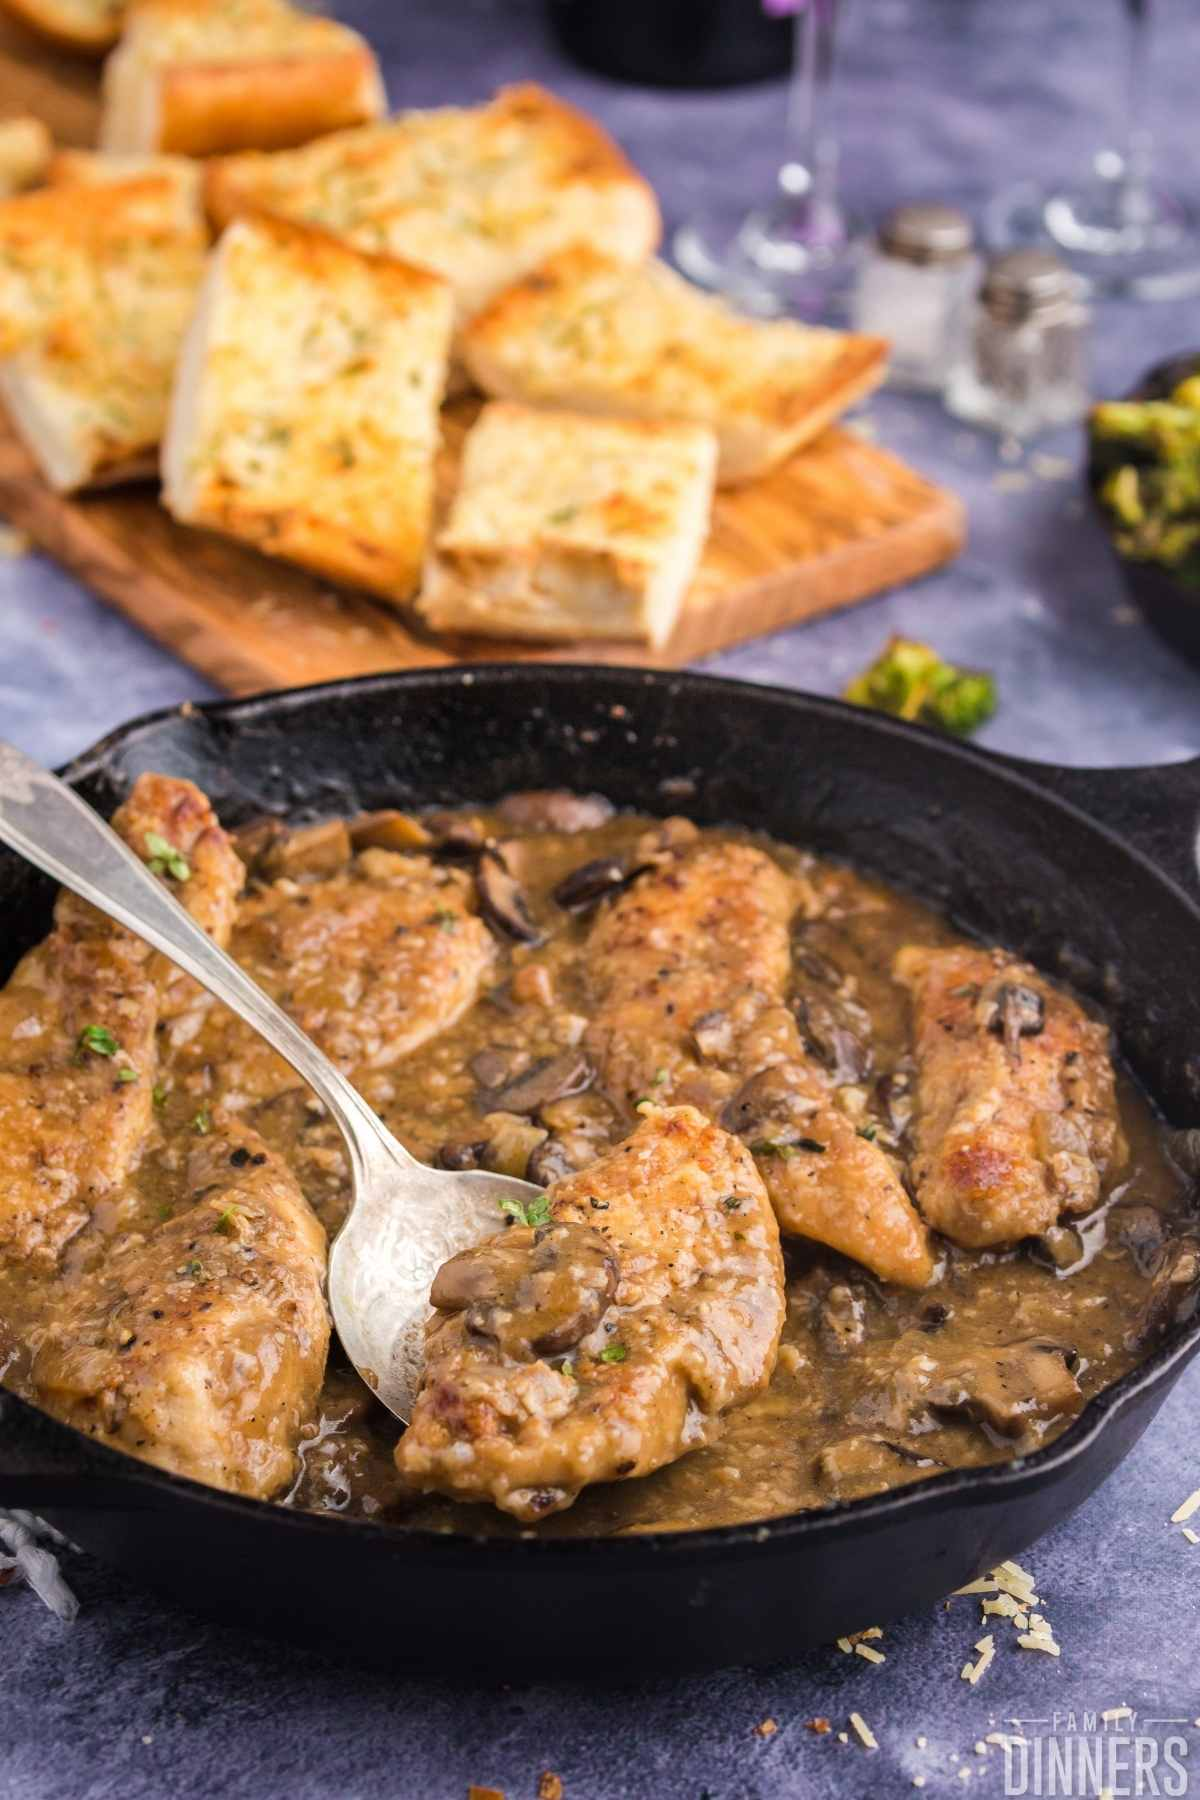 Golden cooked chicken surrounded by mushroom sauce in black cast iron pan. Golden baked french bread slices in background.